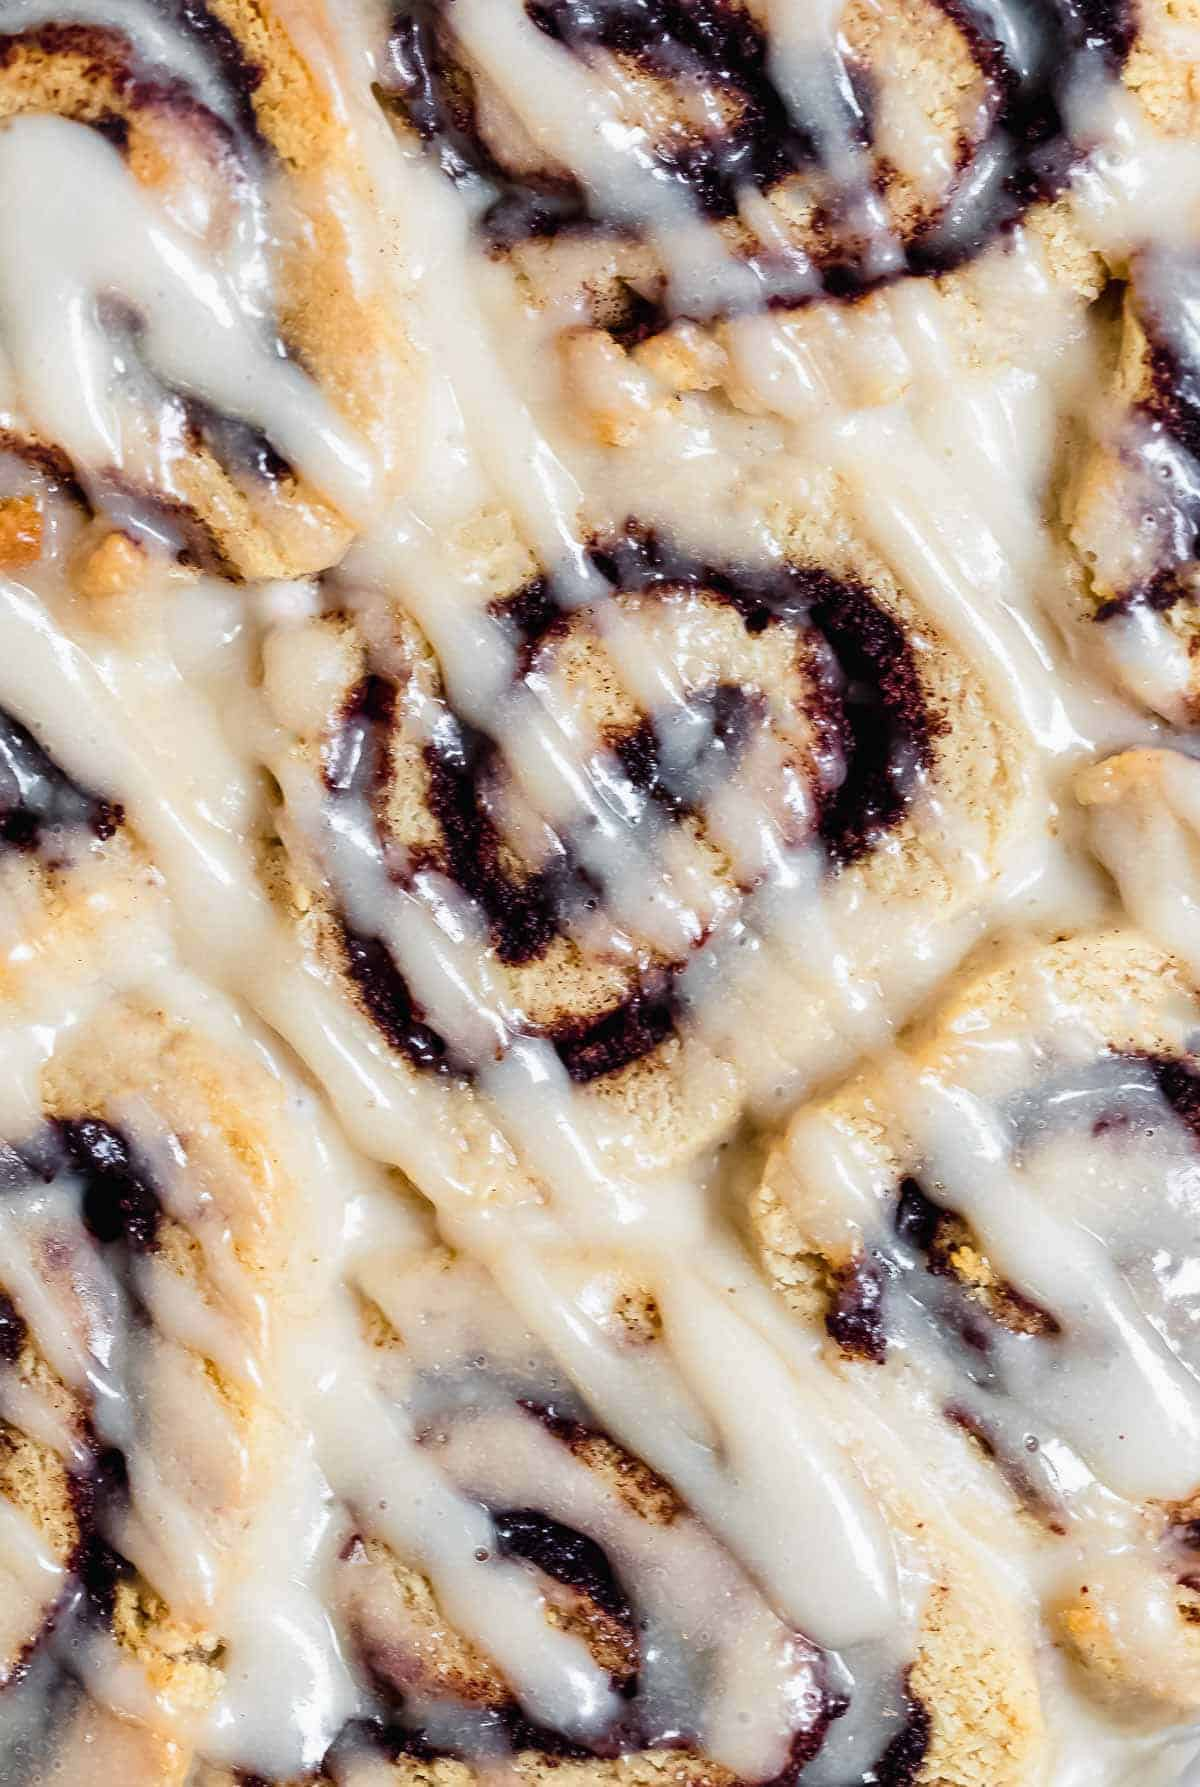 Up close image of cinnamon rolls to show gooey texture.